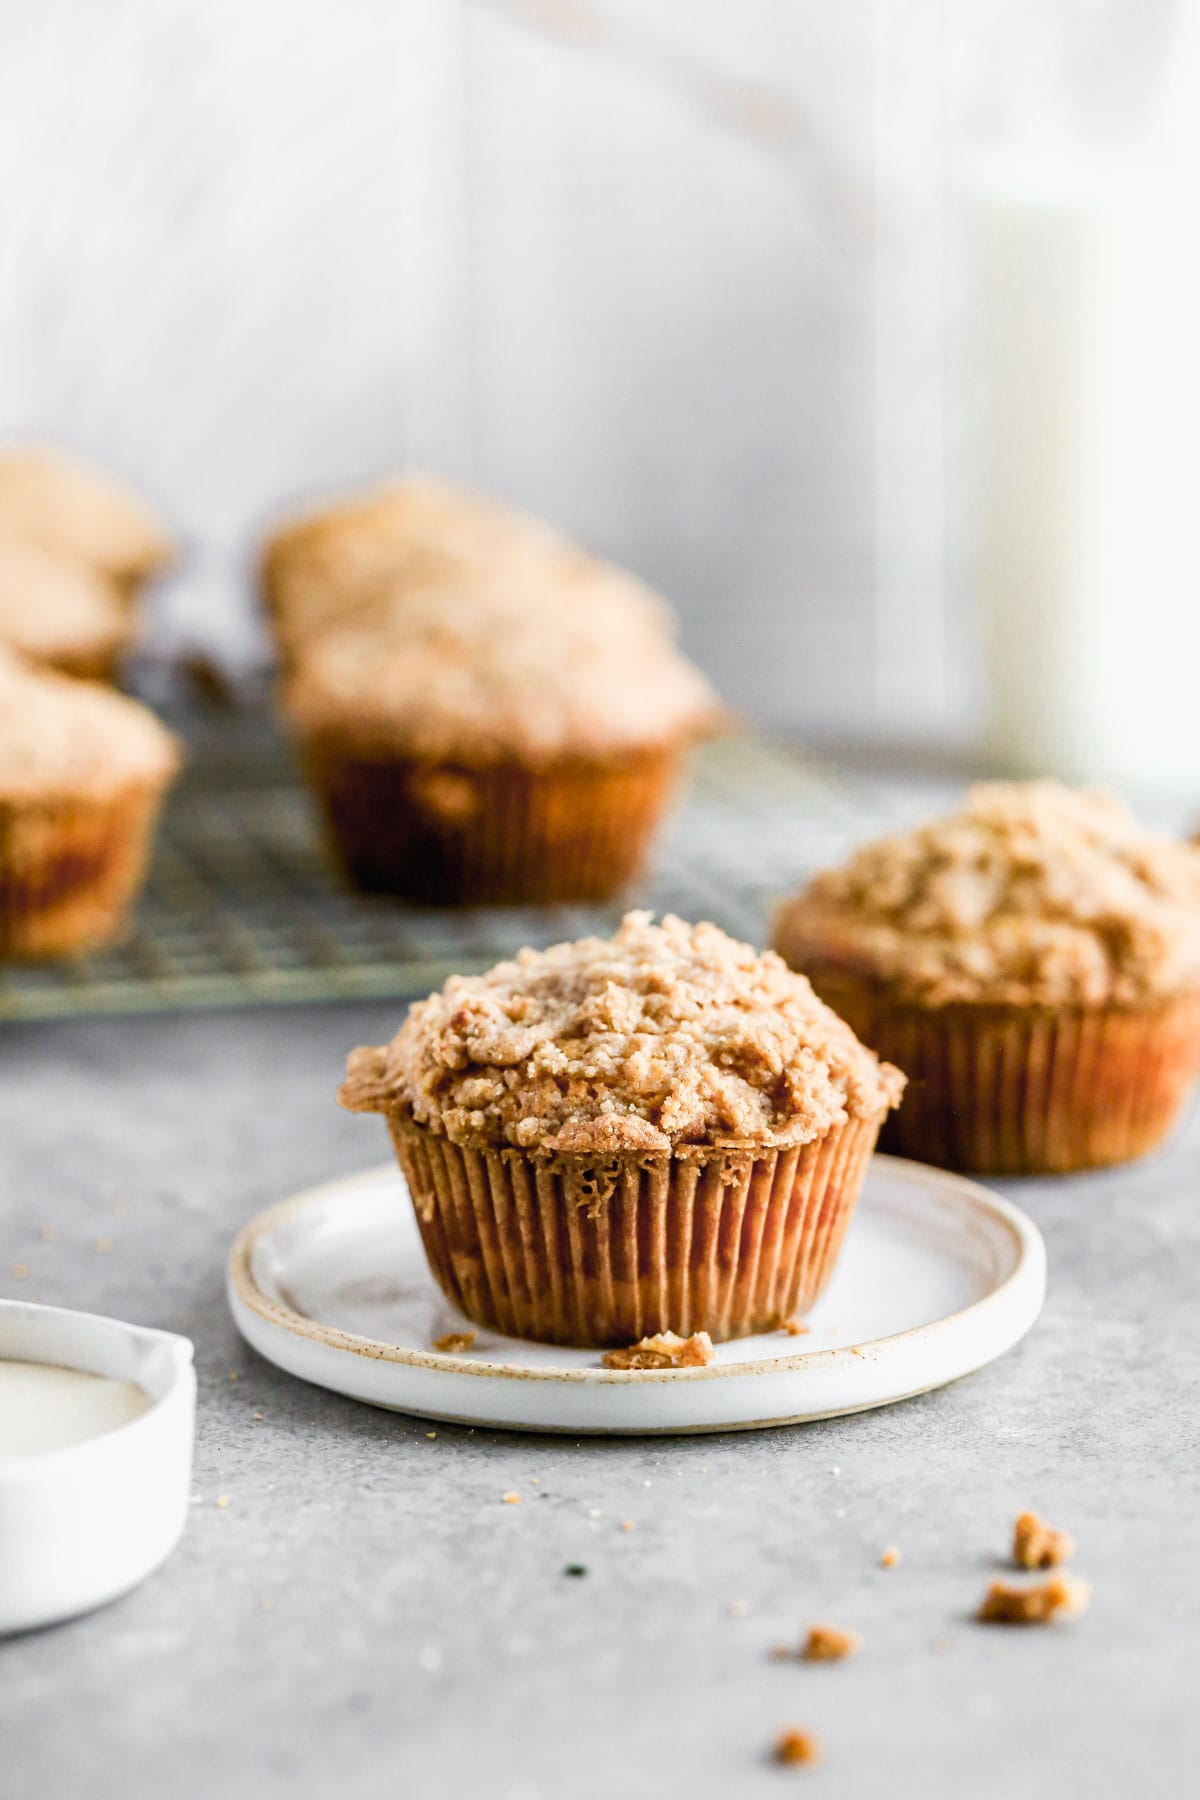 A plate with a coffee cake muffin